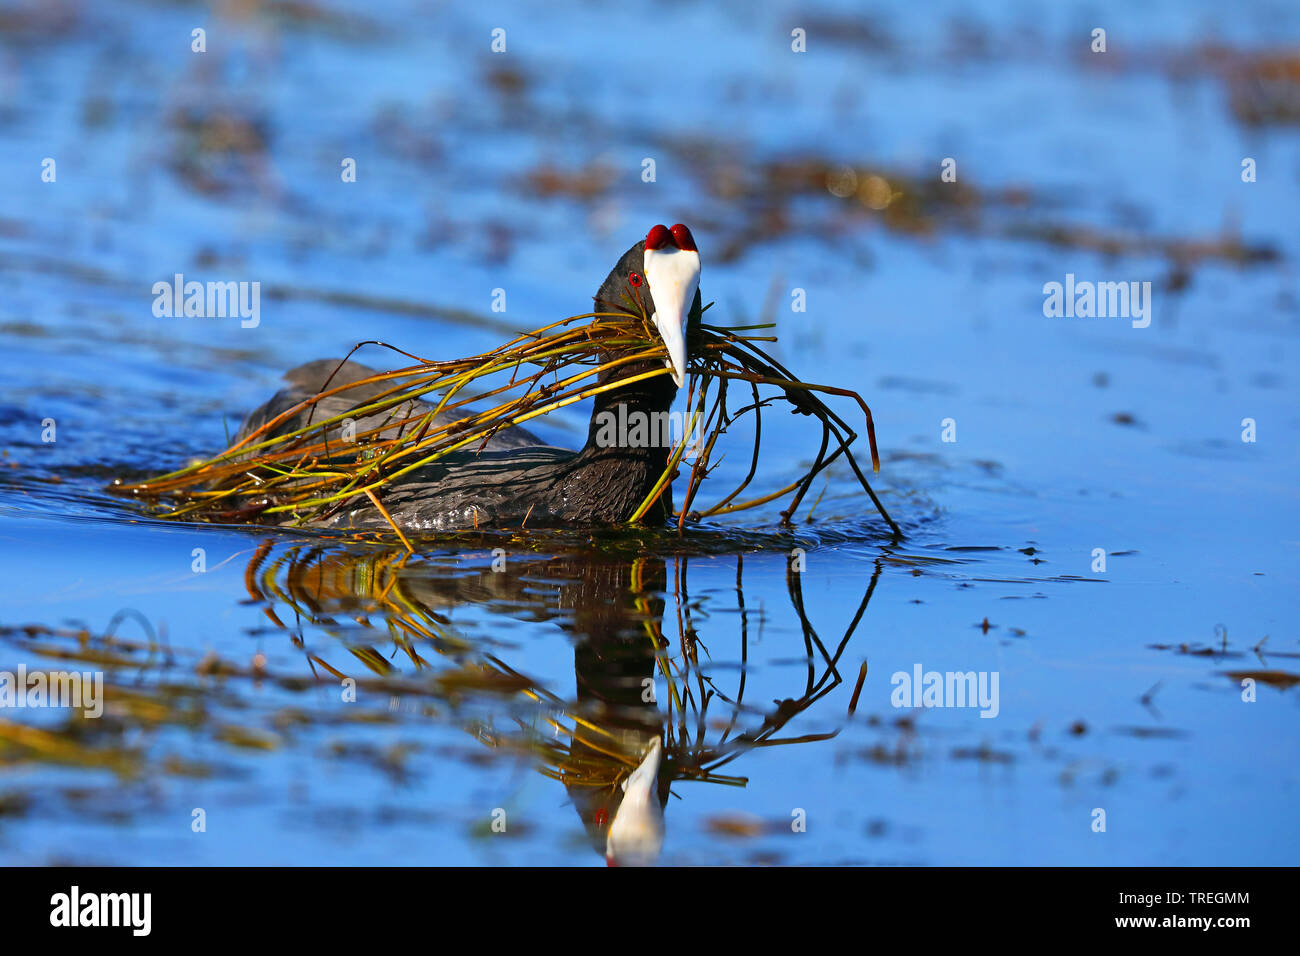 Red-knobbed coot (Fulica cristata), male swimming, feeding on water plants, South Africa, Western Cape, Wilderness National Park Stock Photo